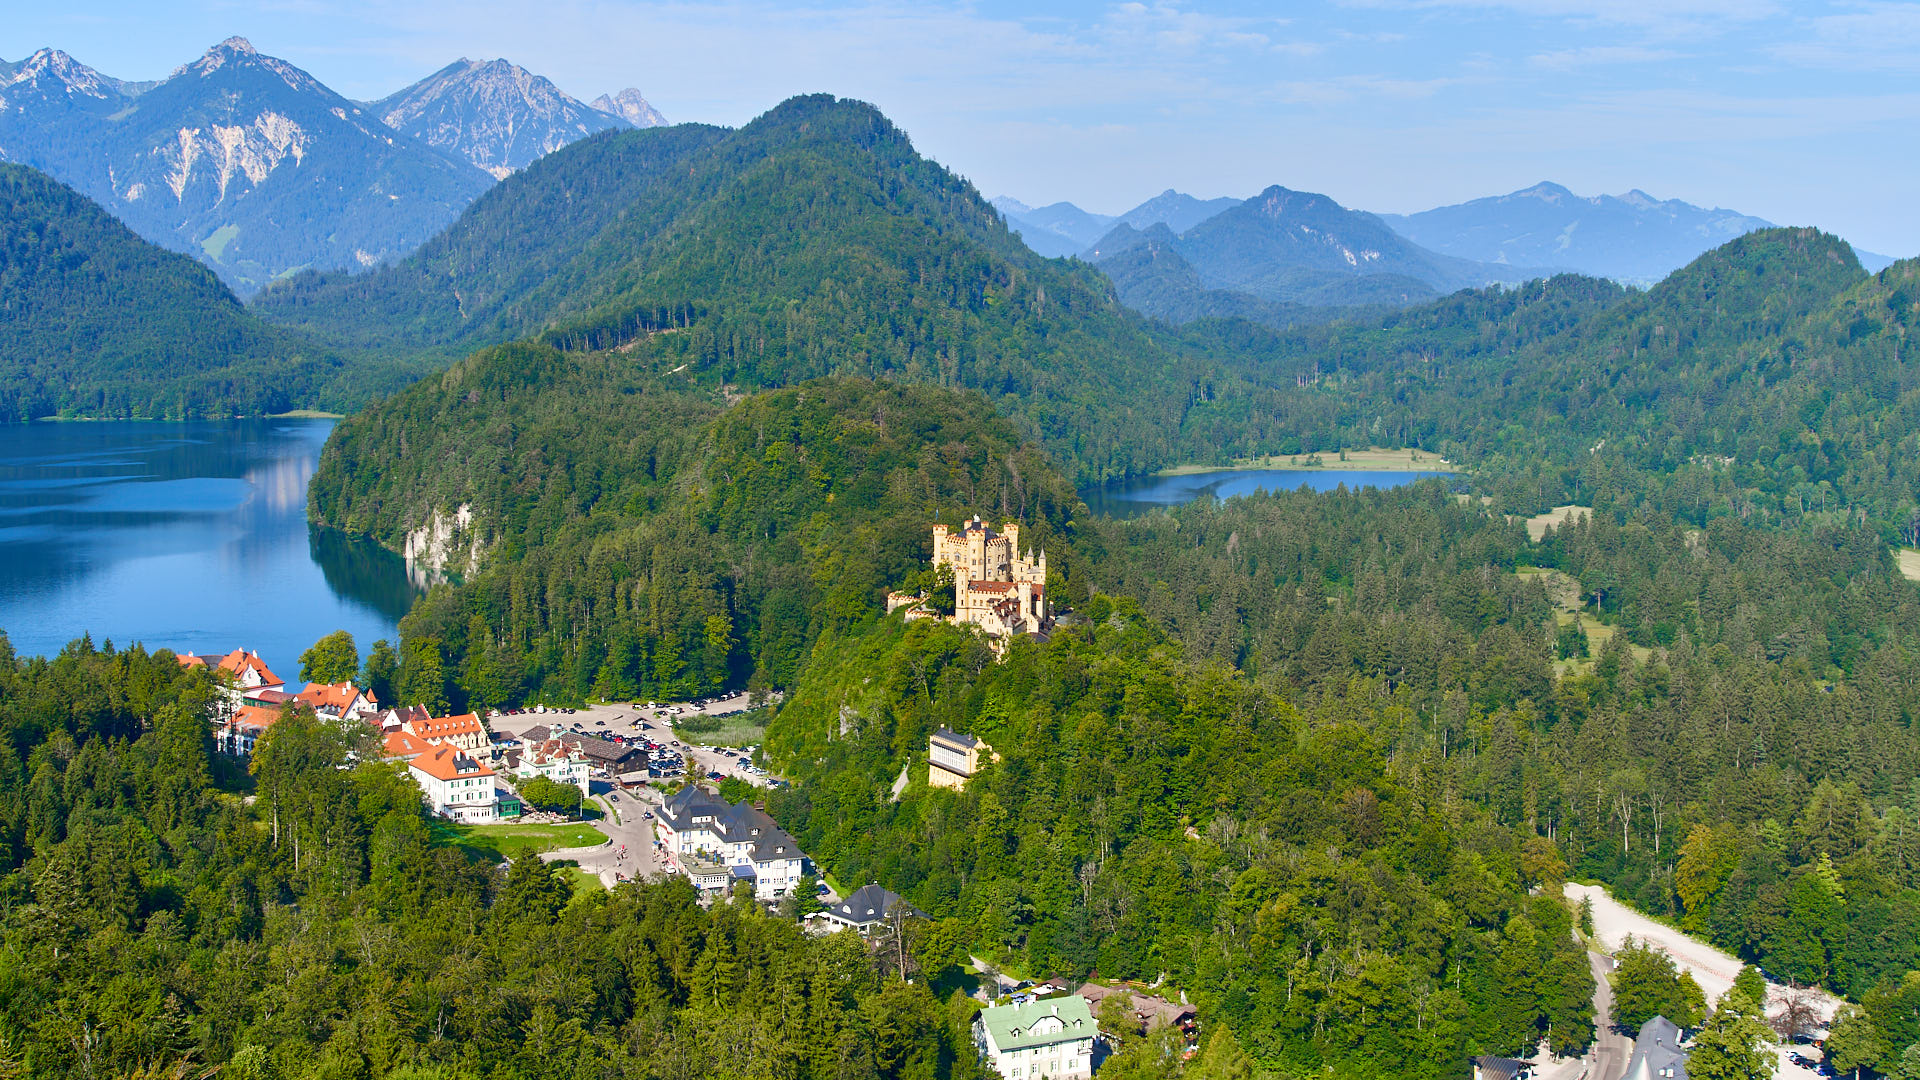 View of Hohenschwangau Castle and the Lake and the Alpsee Lake